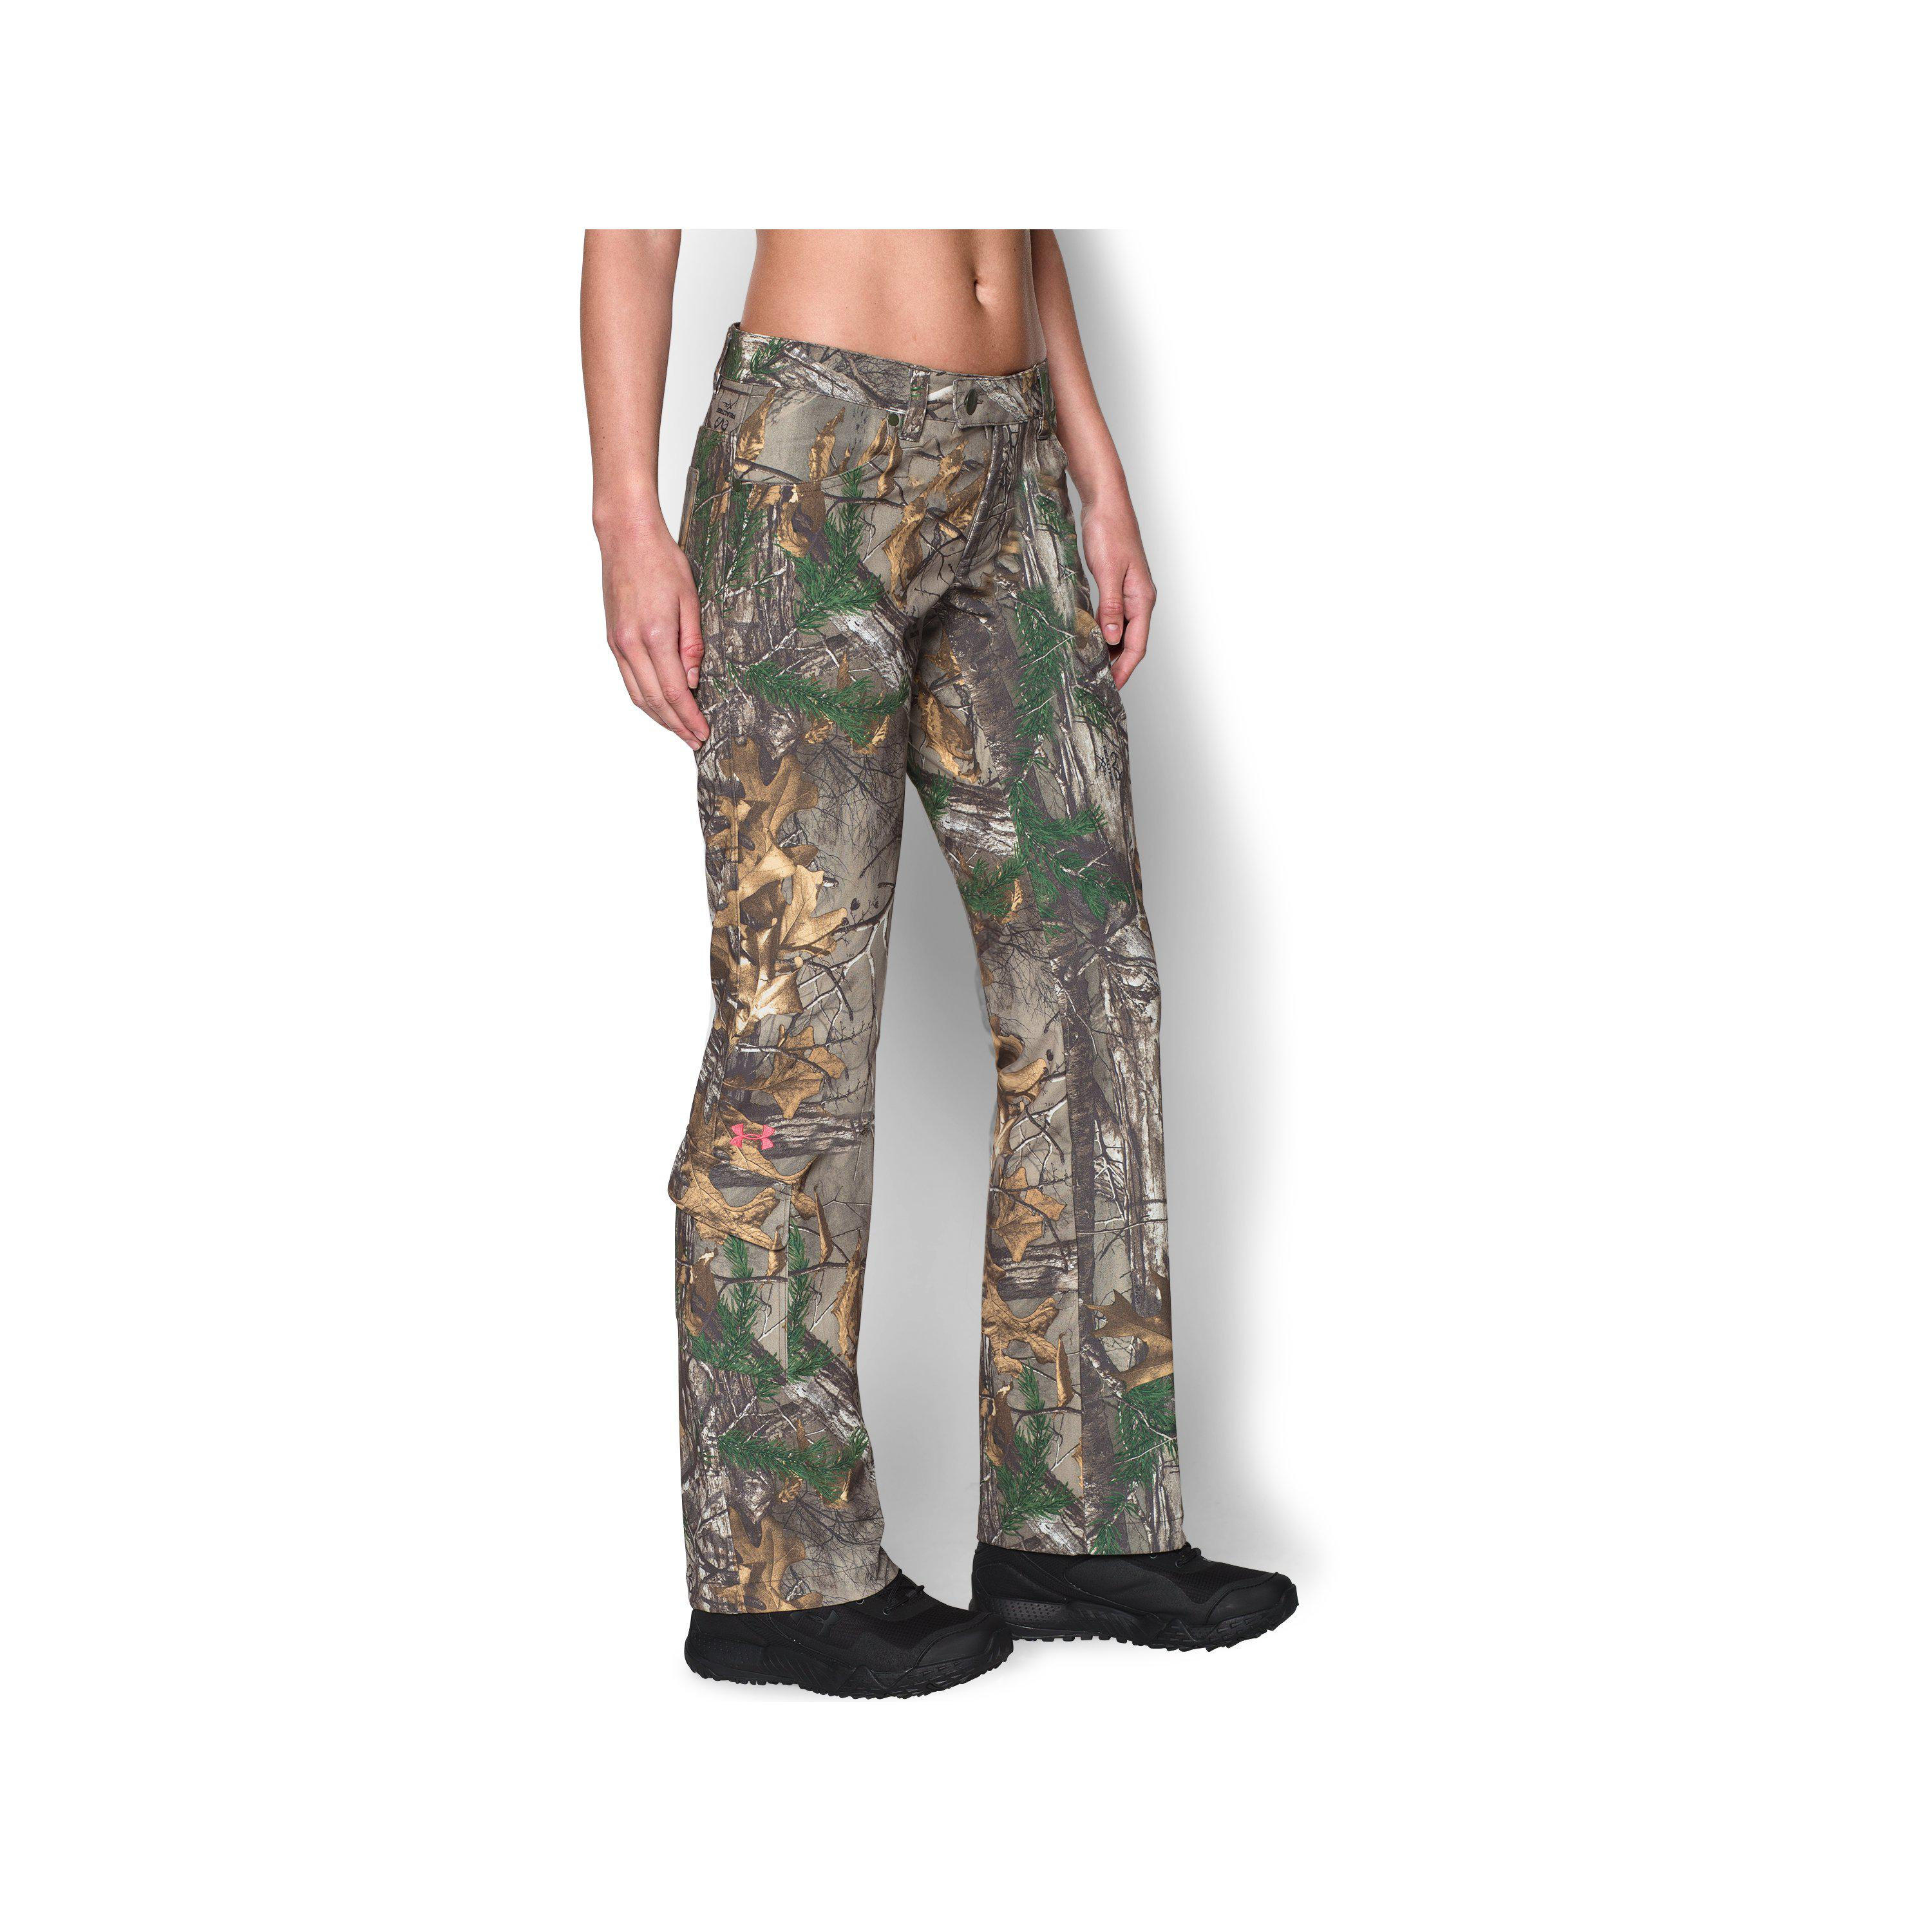 69207227c9dd2 Lyst - Under Armour Women's ® Scent Control Field Pant